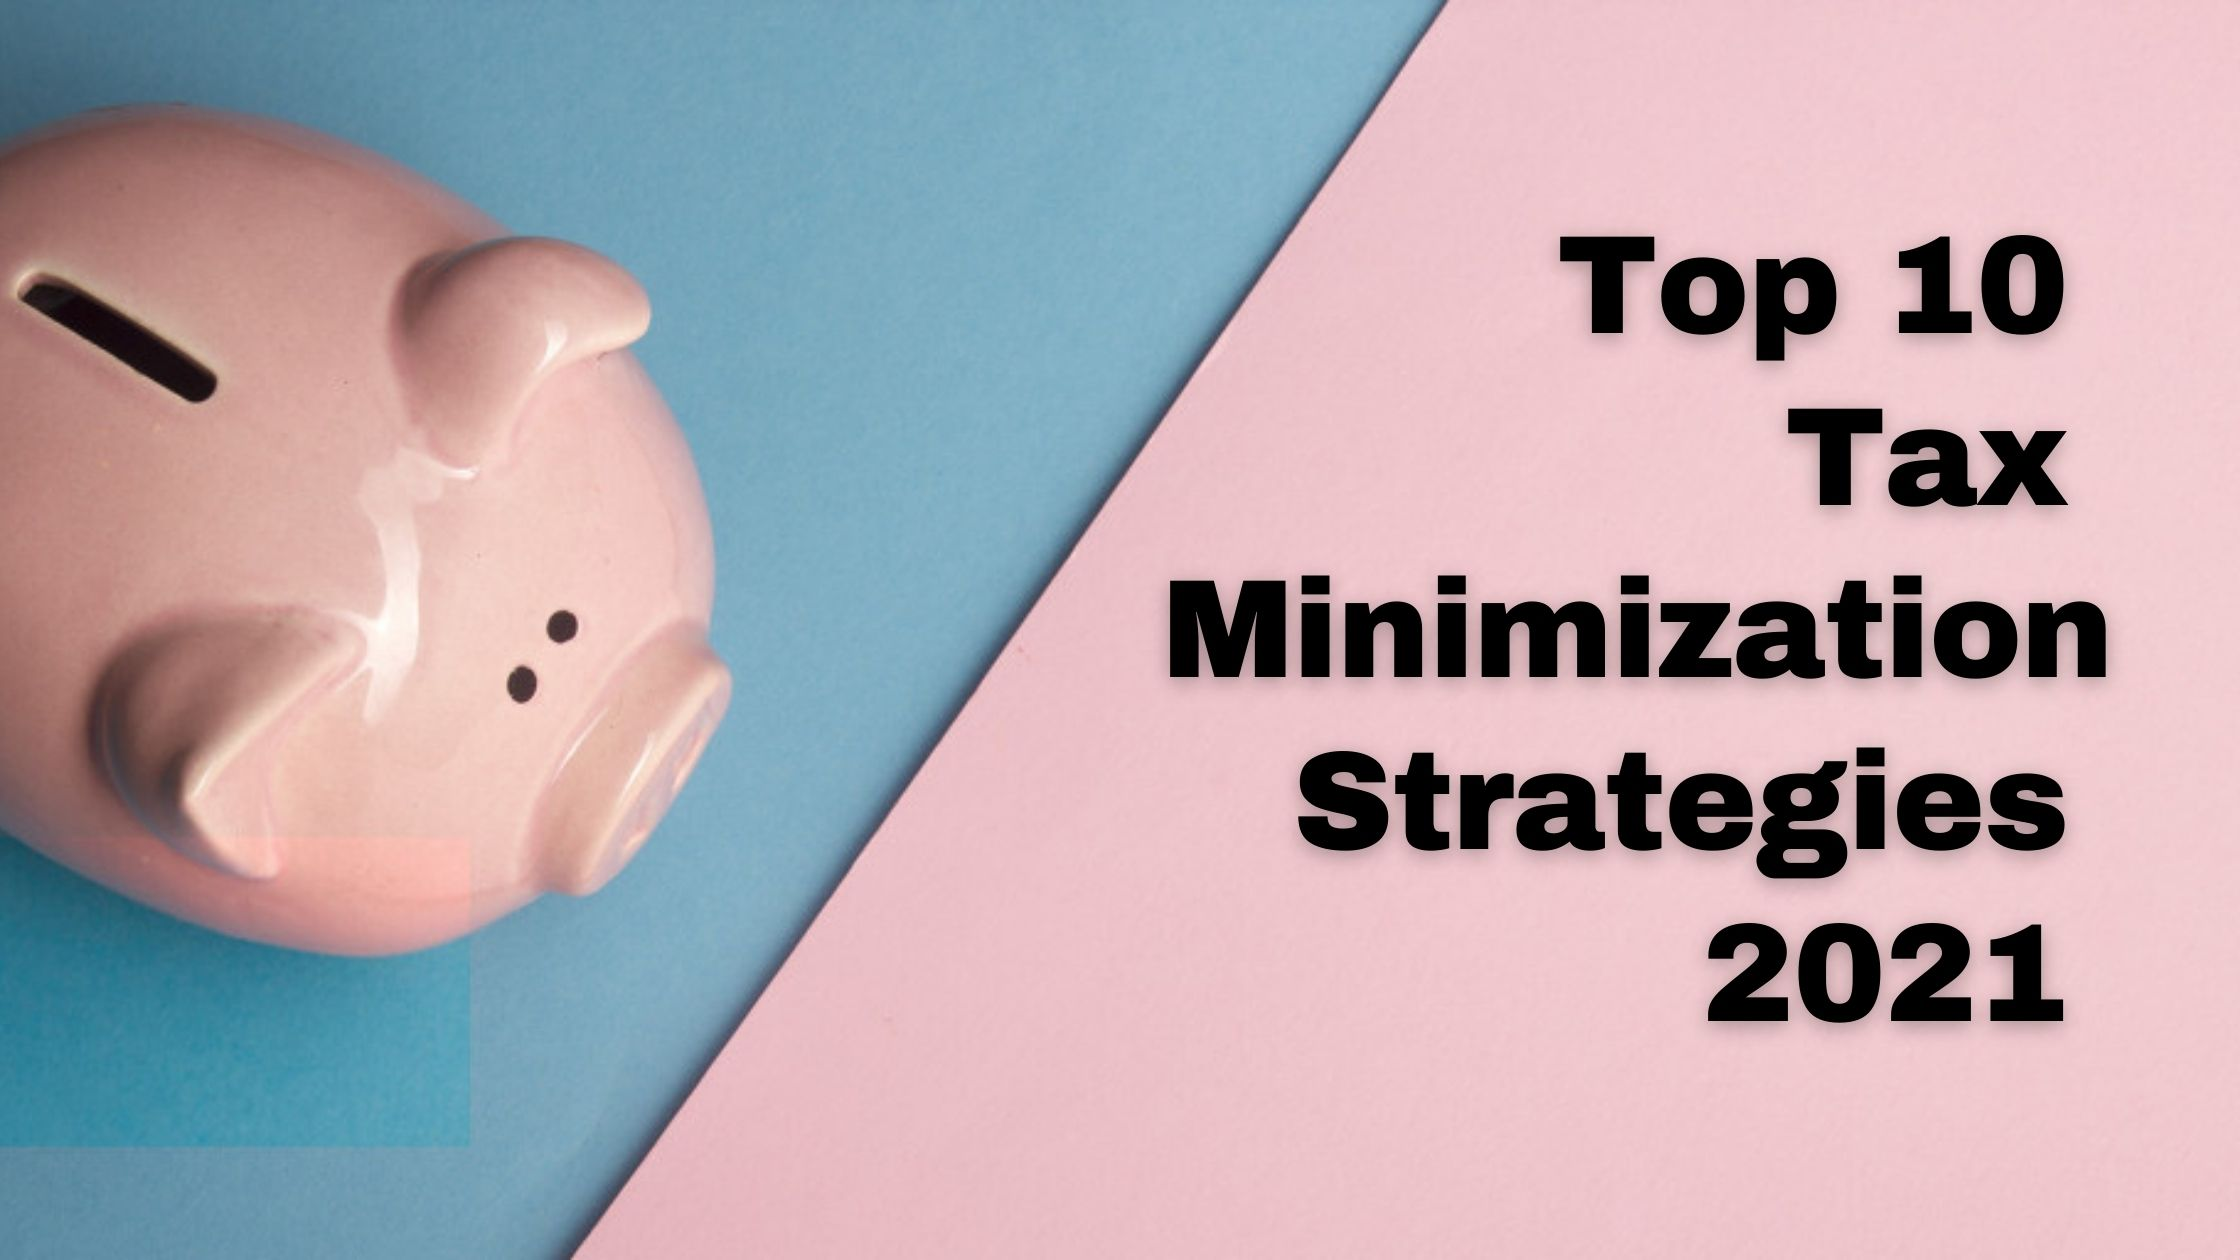 Tax Minimization Strategies 2021